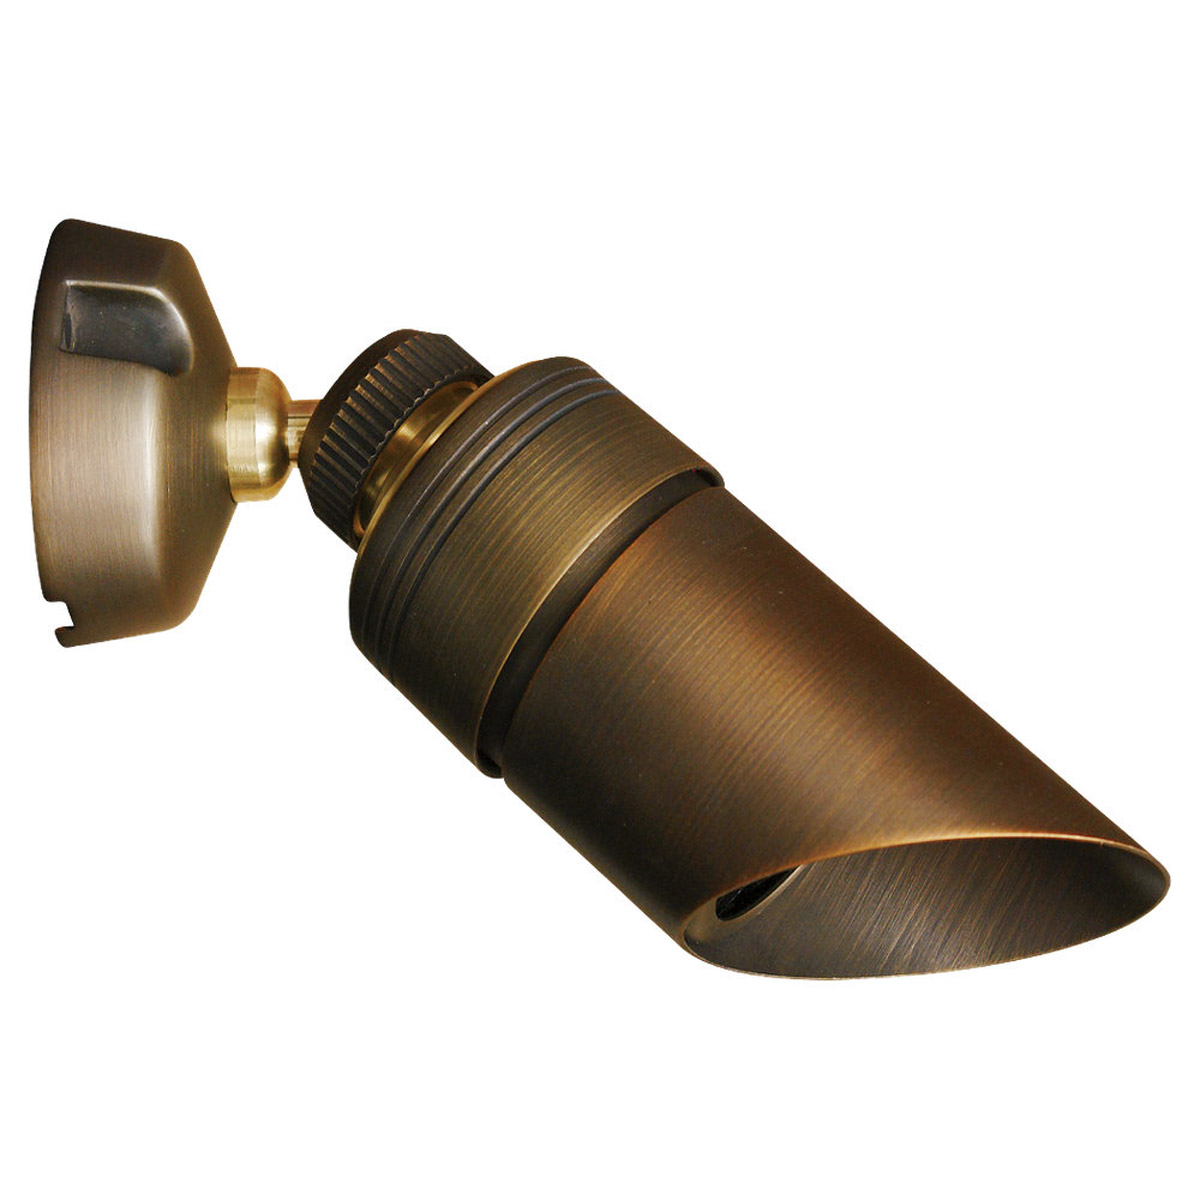 Sea Gull Lighting Meridian 1 Light Landscape Light in Weathered Brass 91126-147 photo